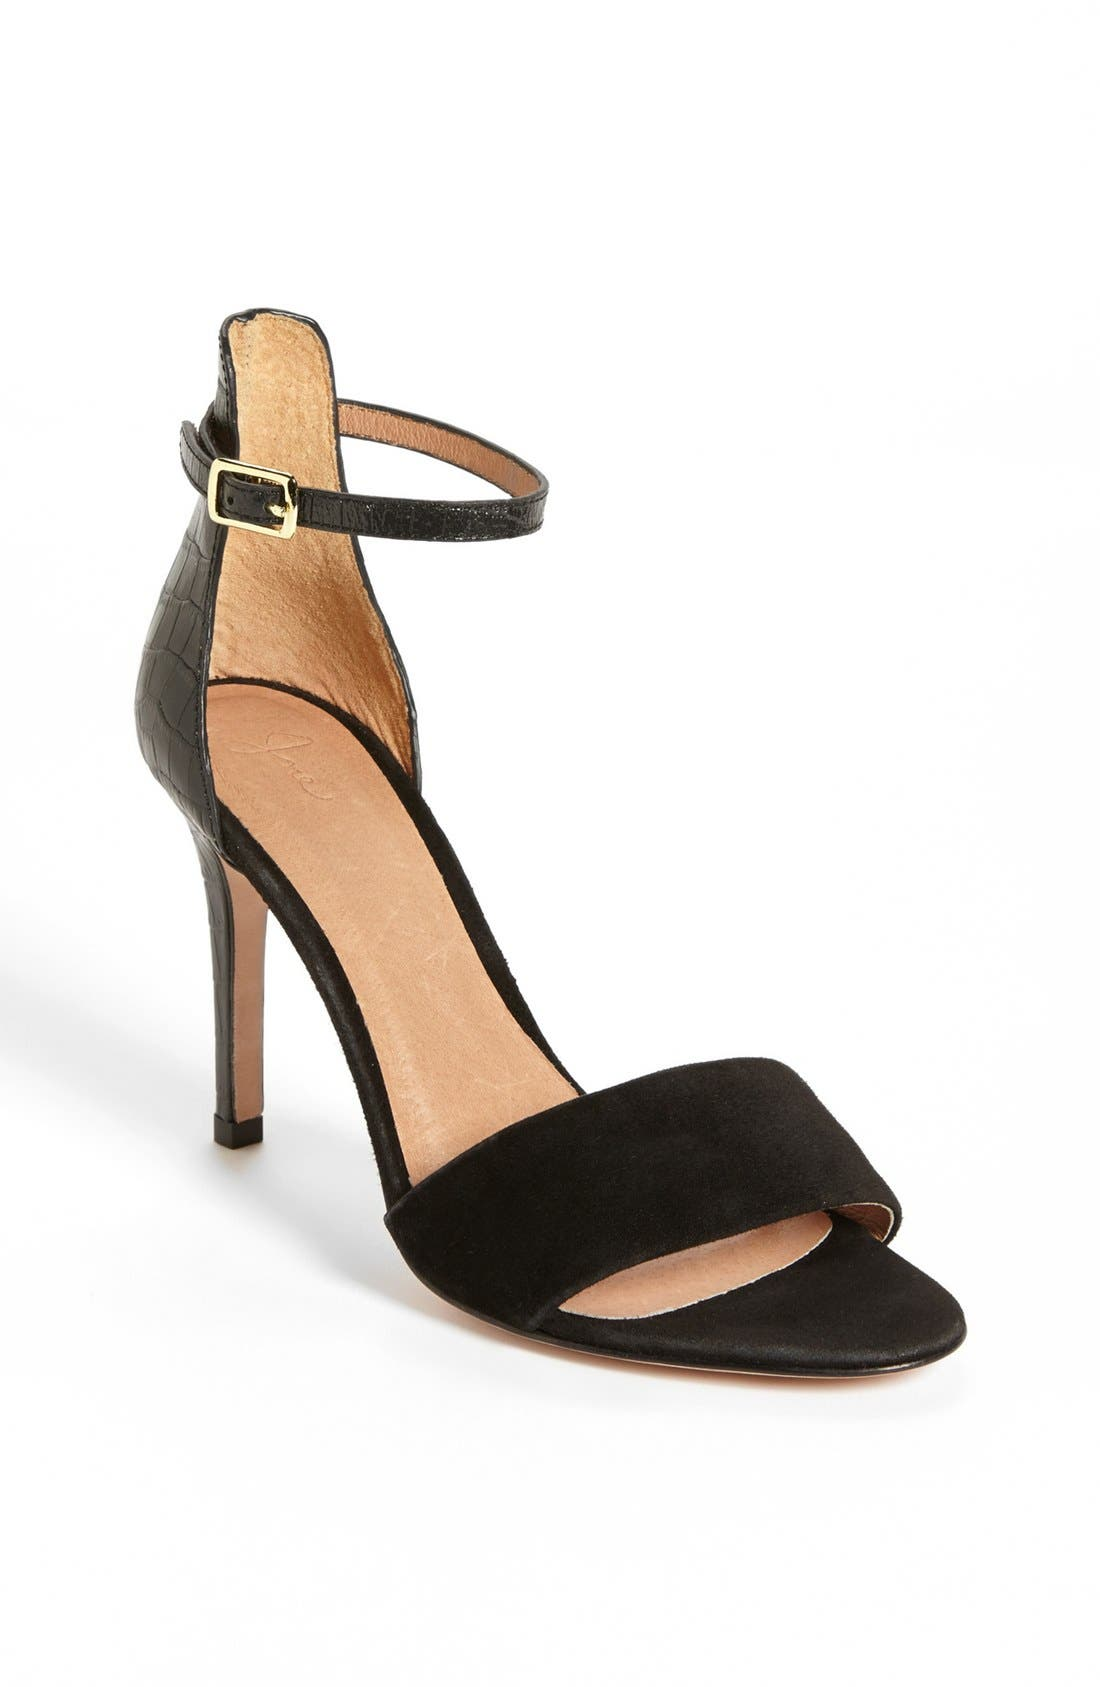 Alternate Image 1 Selected - Joie 'Jaclyn' Leather Sandal